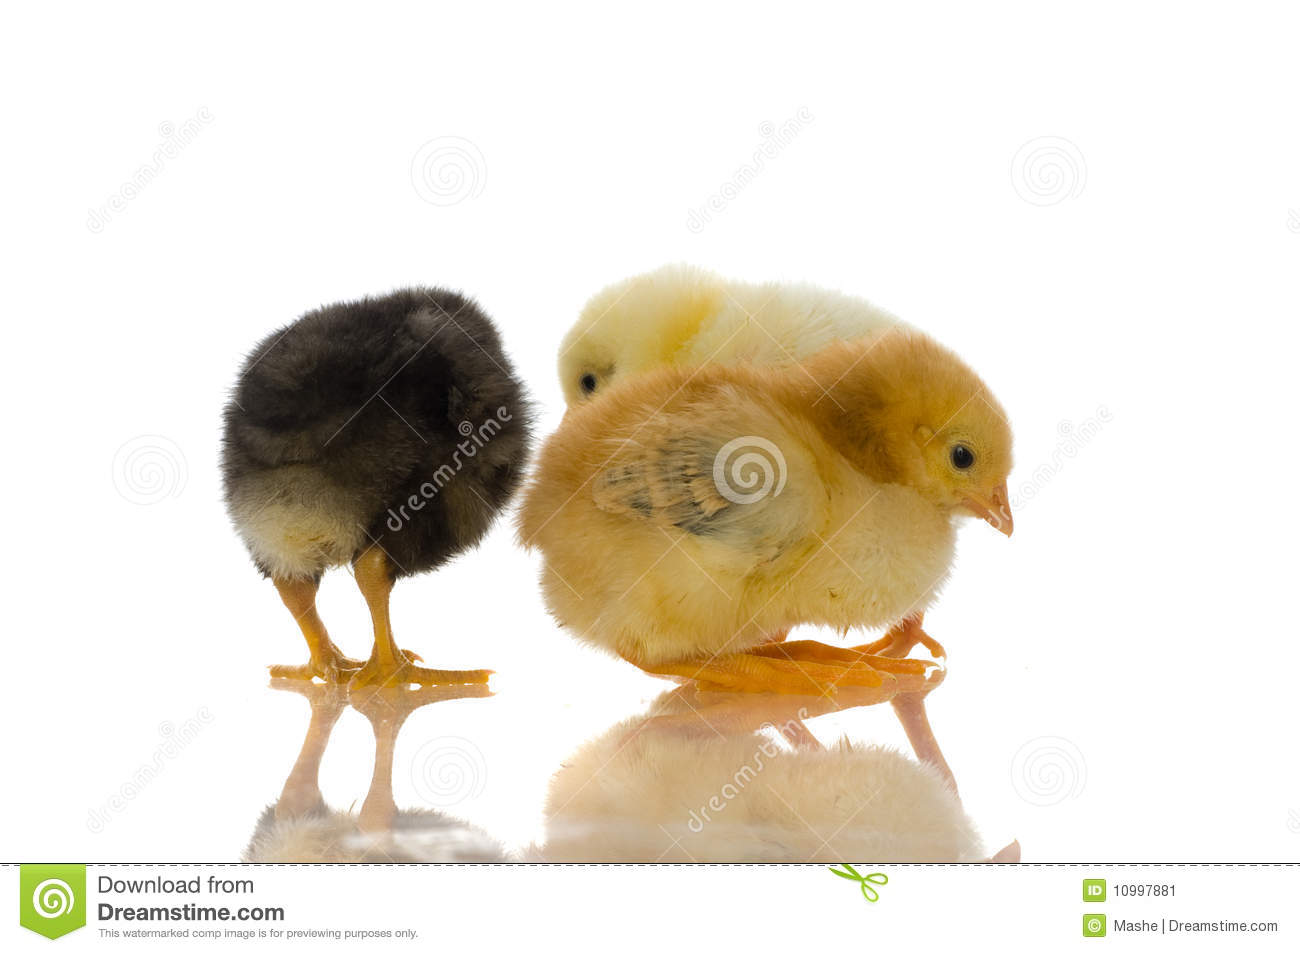 Cute Baby Chicks Stock Image - Image: 10997881